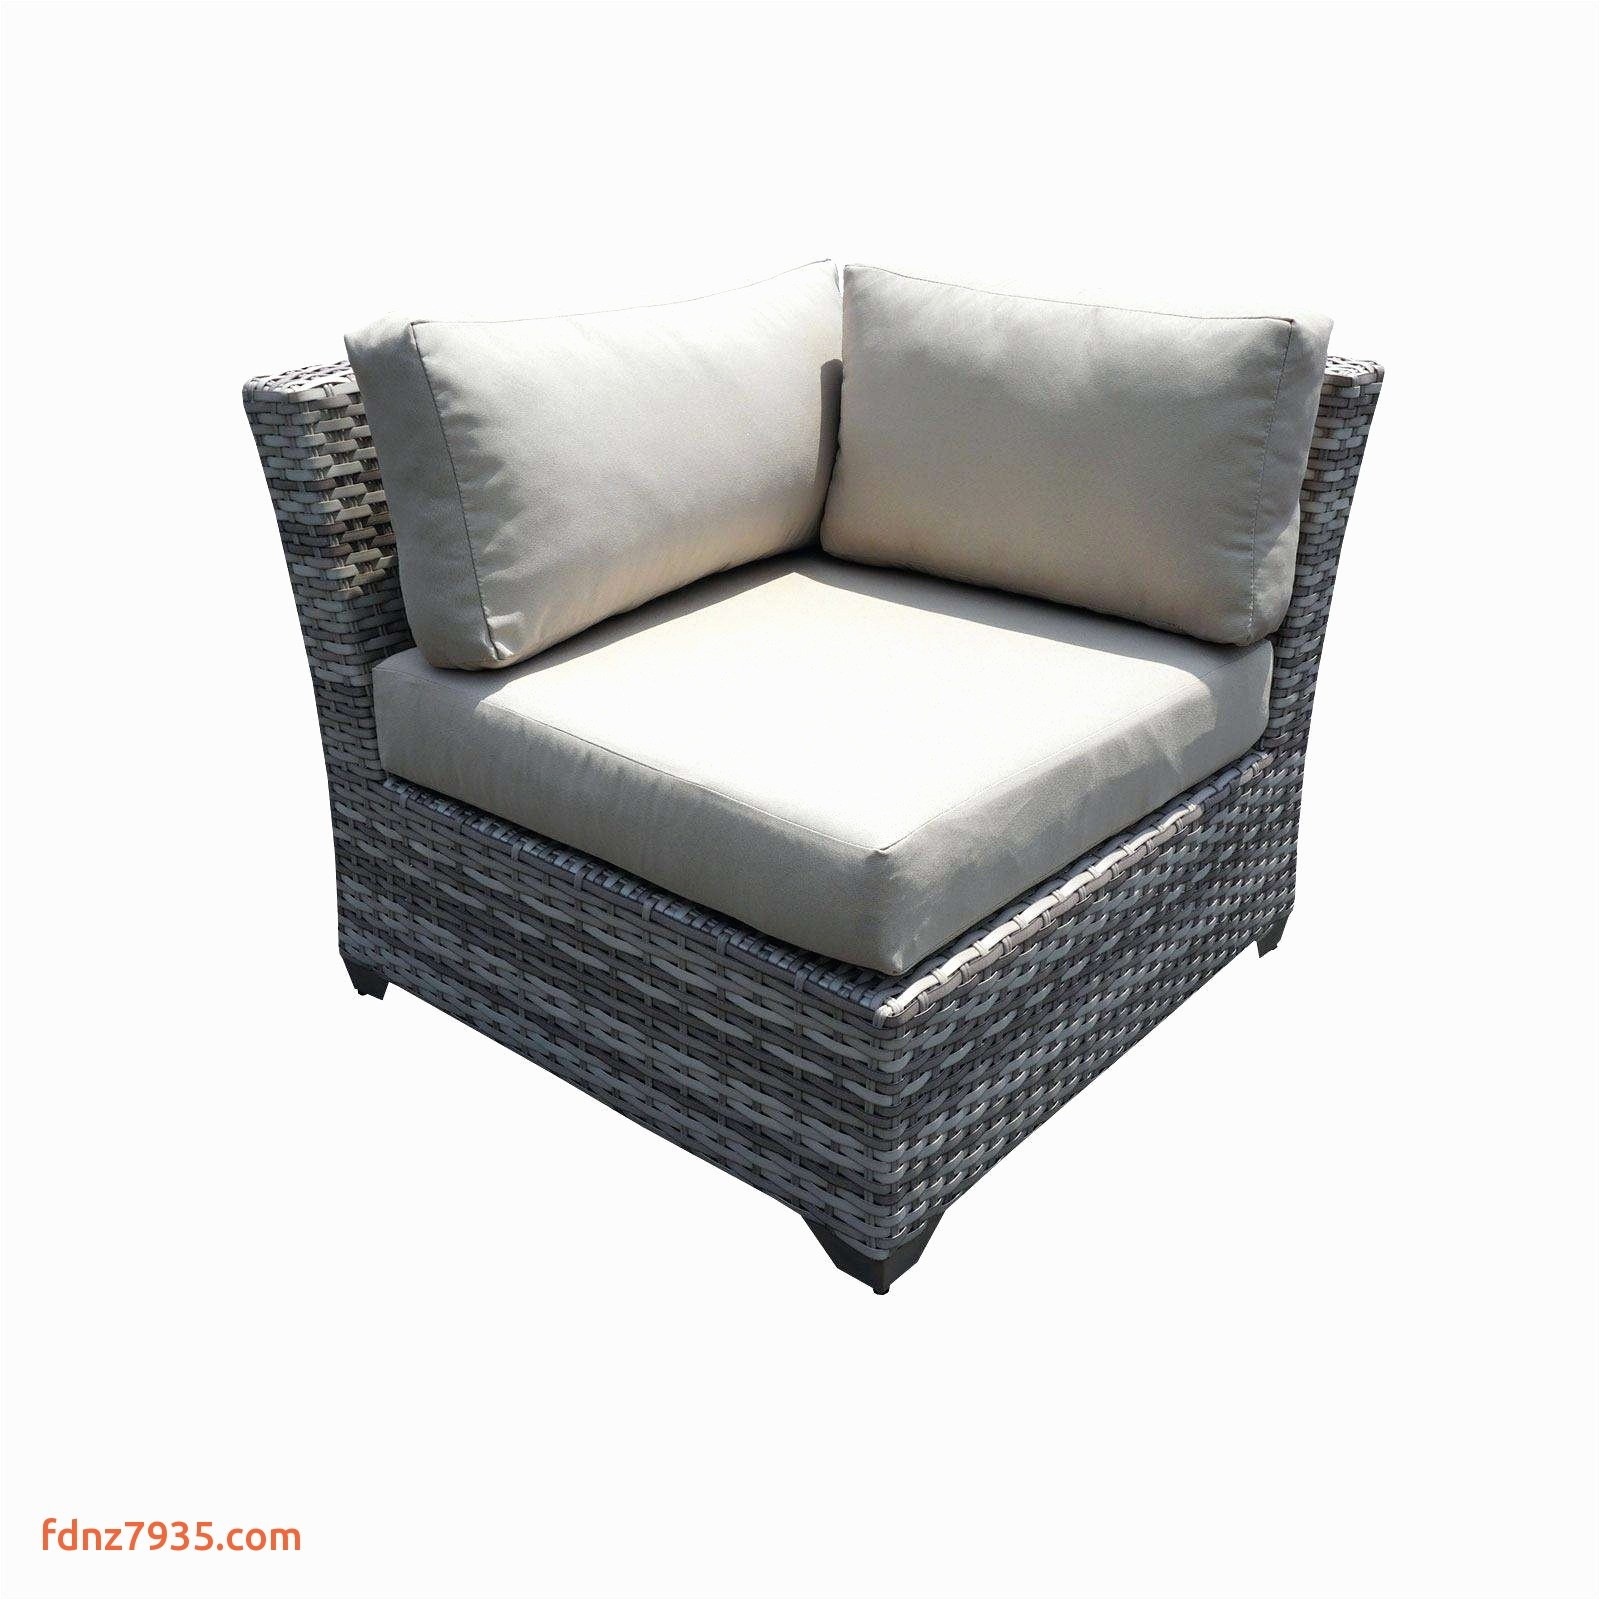 Pottery Barn Outdoor Furniture Replacement Cushions Replacement Cushions for Outdoor Furniture Fresh sofa Design